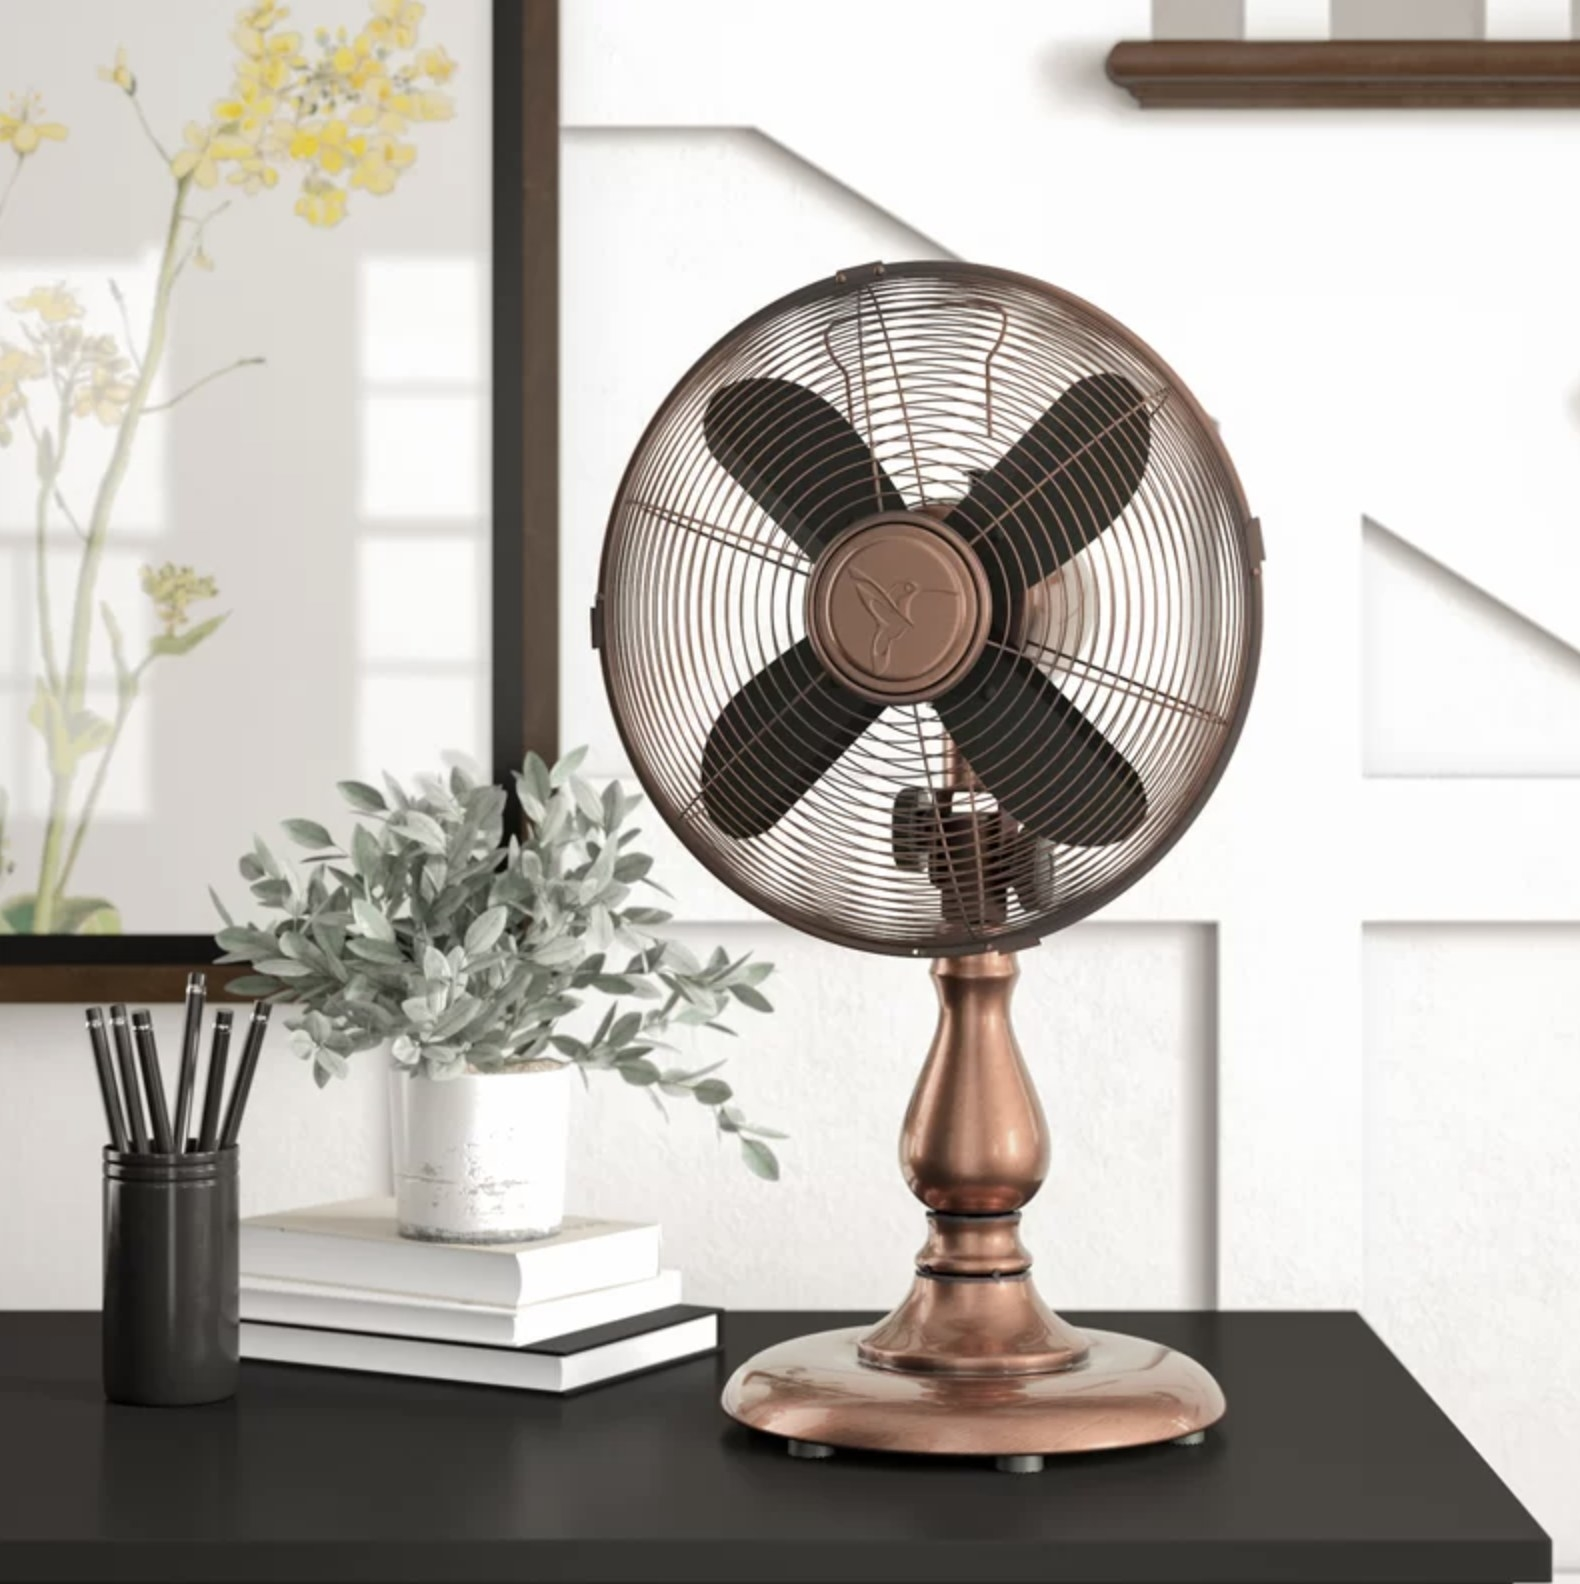 A copper desk fan